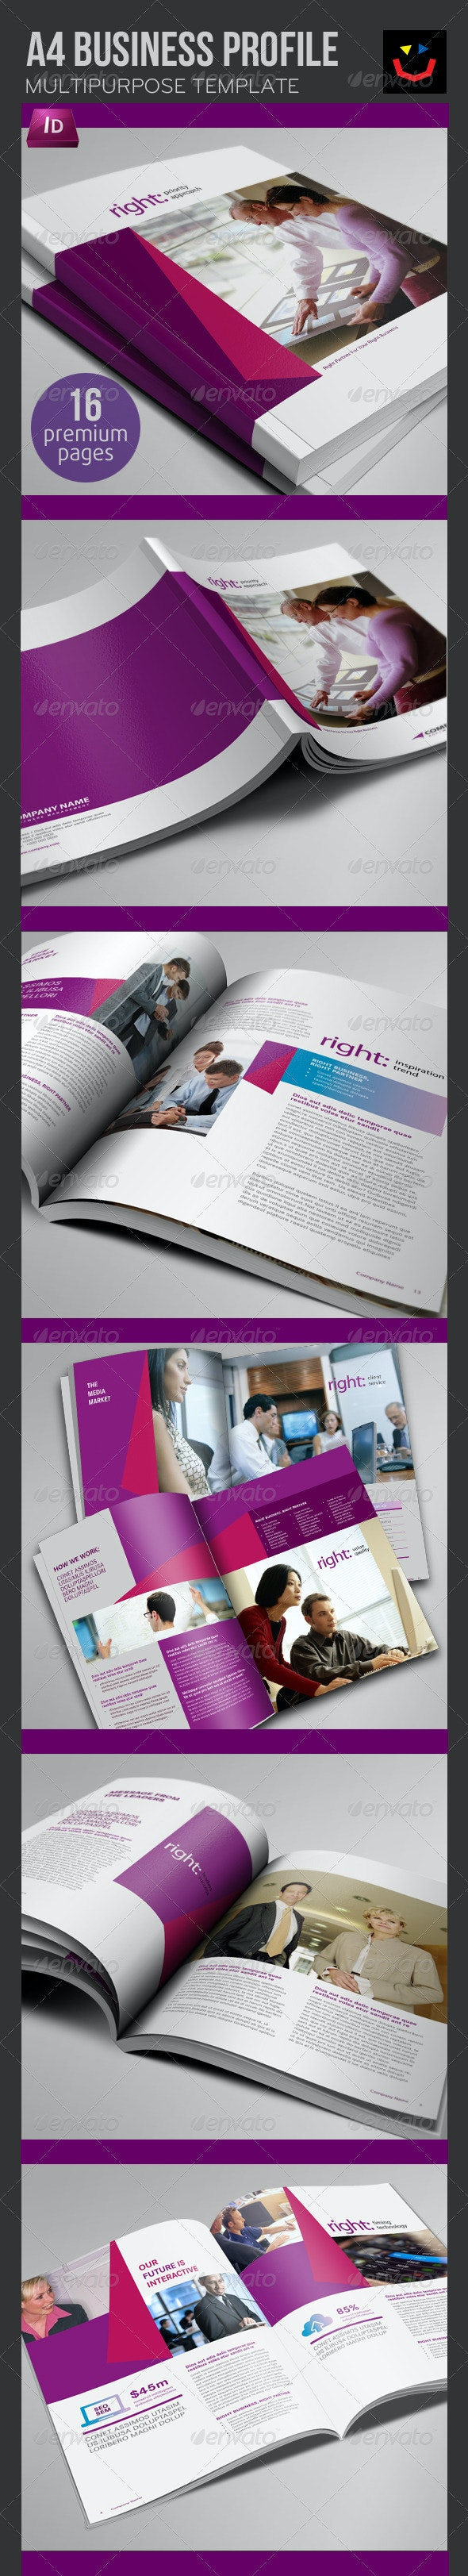 Business Profile Brochure - Brochures Print Templates